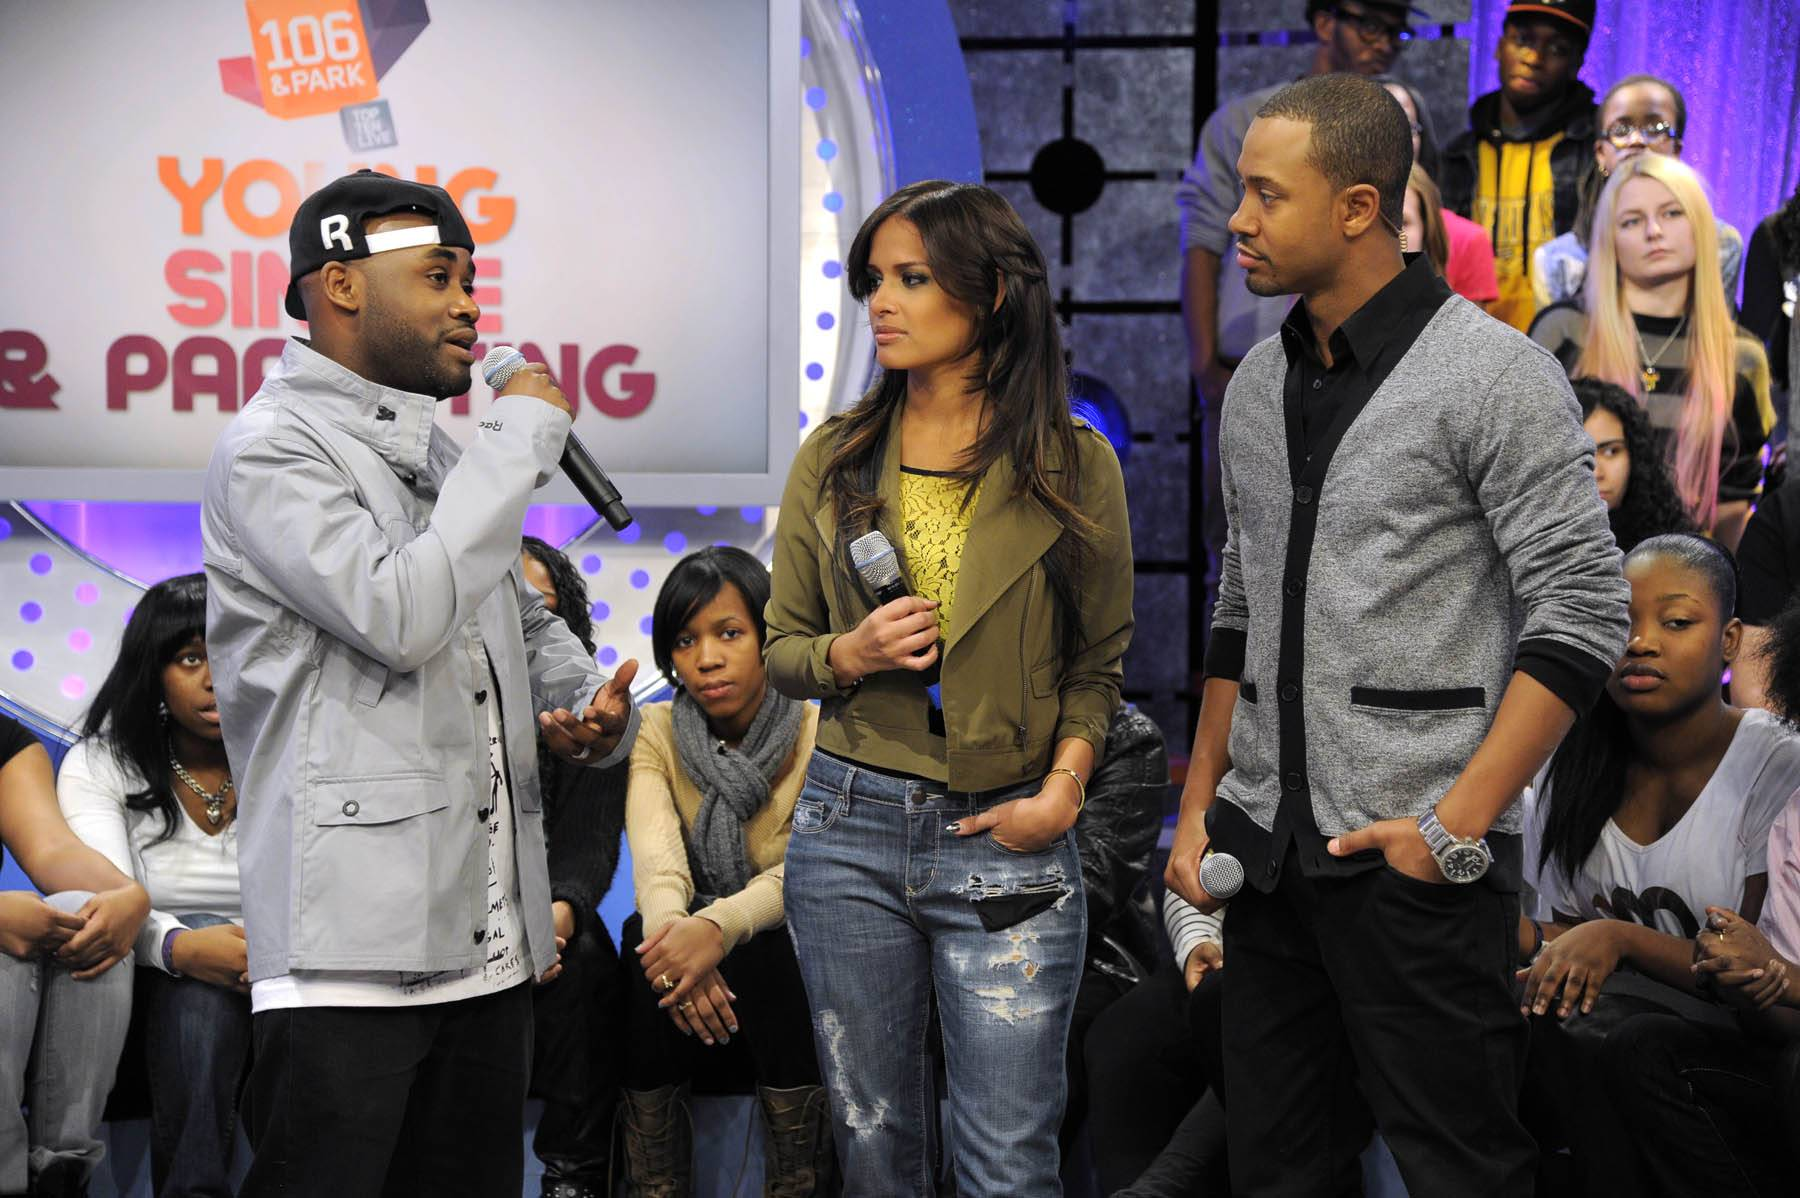 It's Tray - Tray Chaney talks with Terrence and Rocsi about parenting at 106 & Park, January 30, 2012. (Photo: John Ricard / BET)